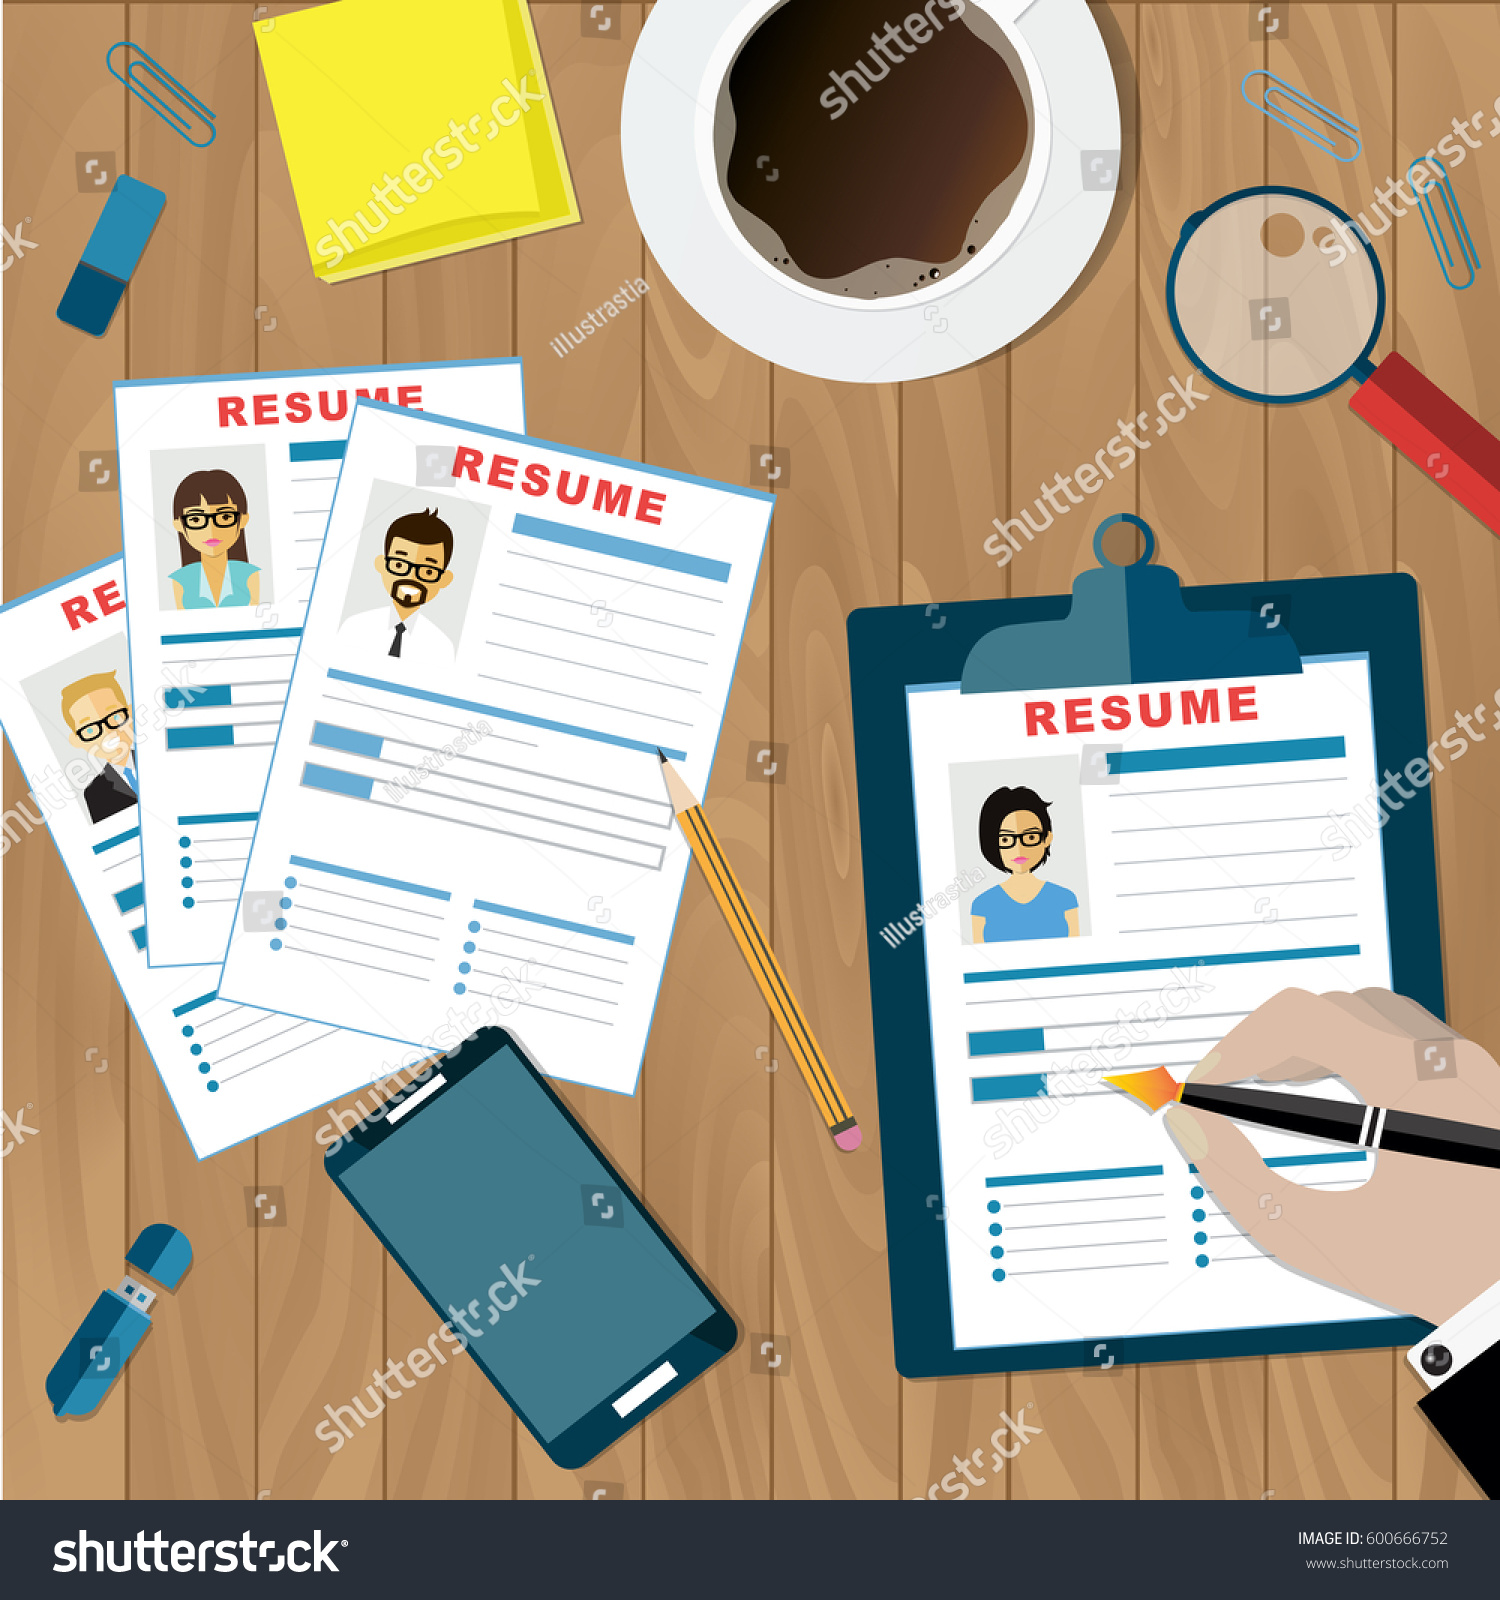 human resources management concept analyzing resume stock vector